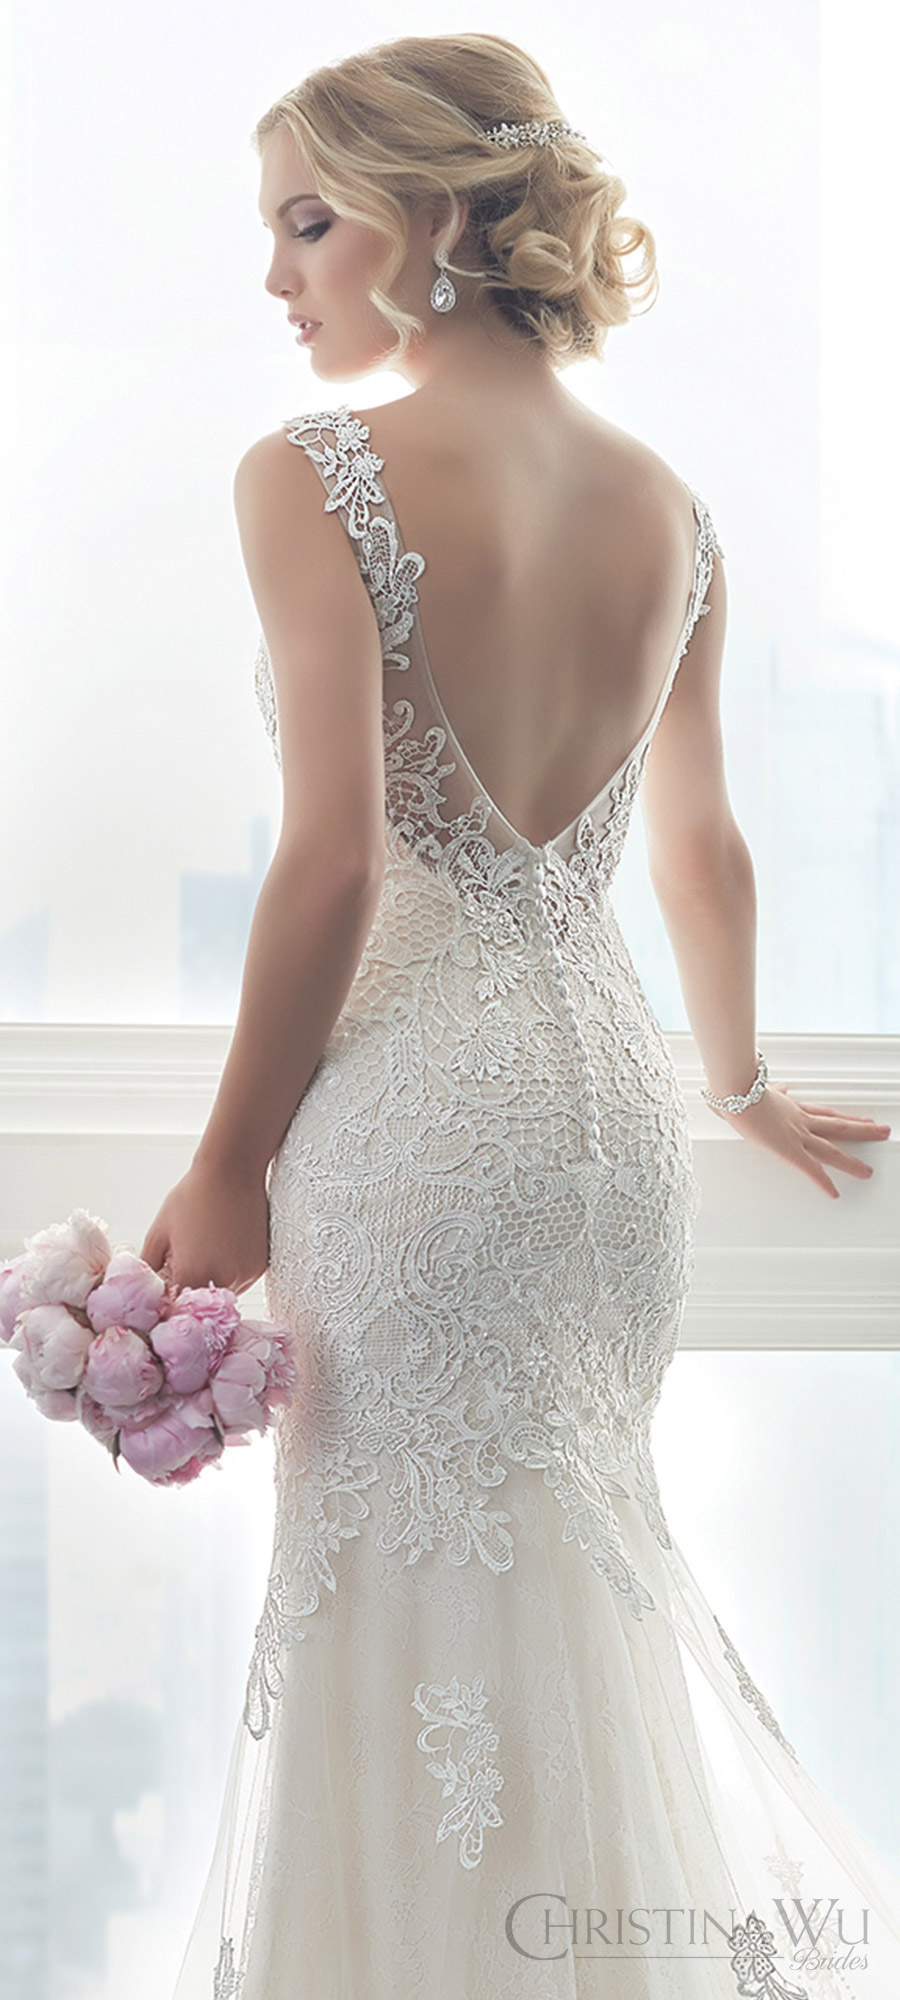 christina wu brides spring 2017 bridal sleeveless illusion straps vneck fully lace embellished trumpet wedding dress (15625) zbv train romantic elegant